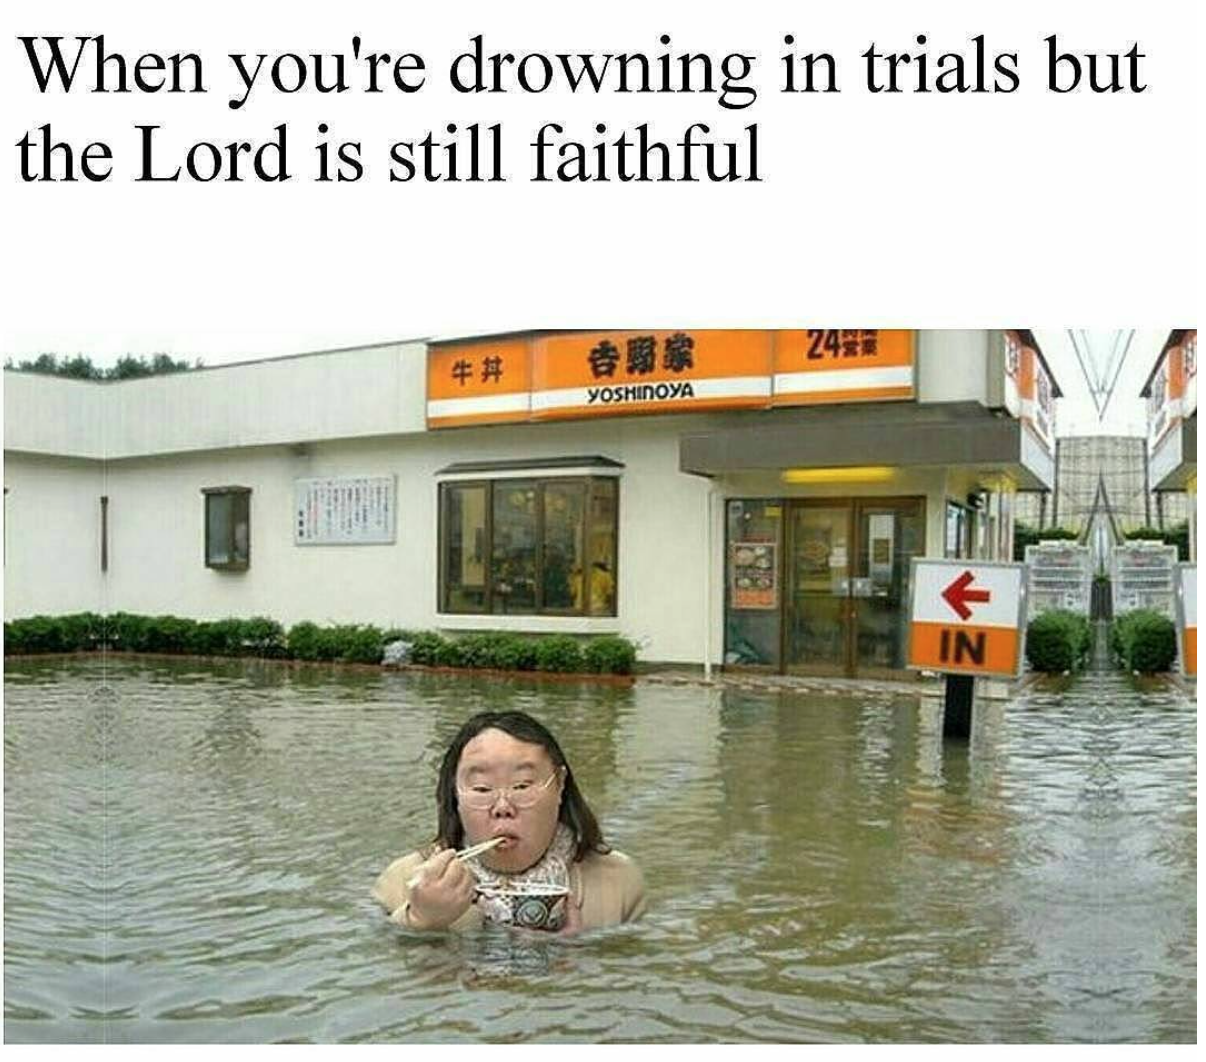 When you drowning in trials but the Lord is faithful meme